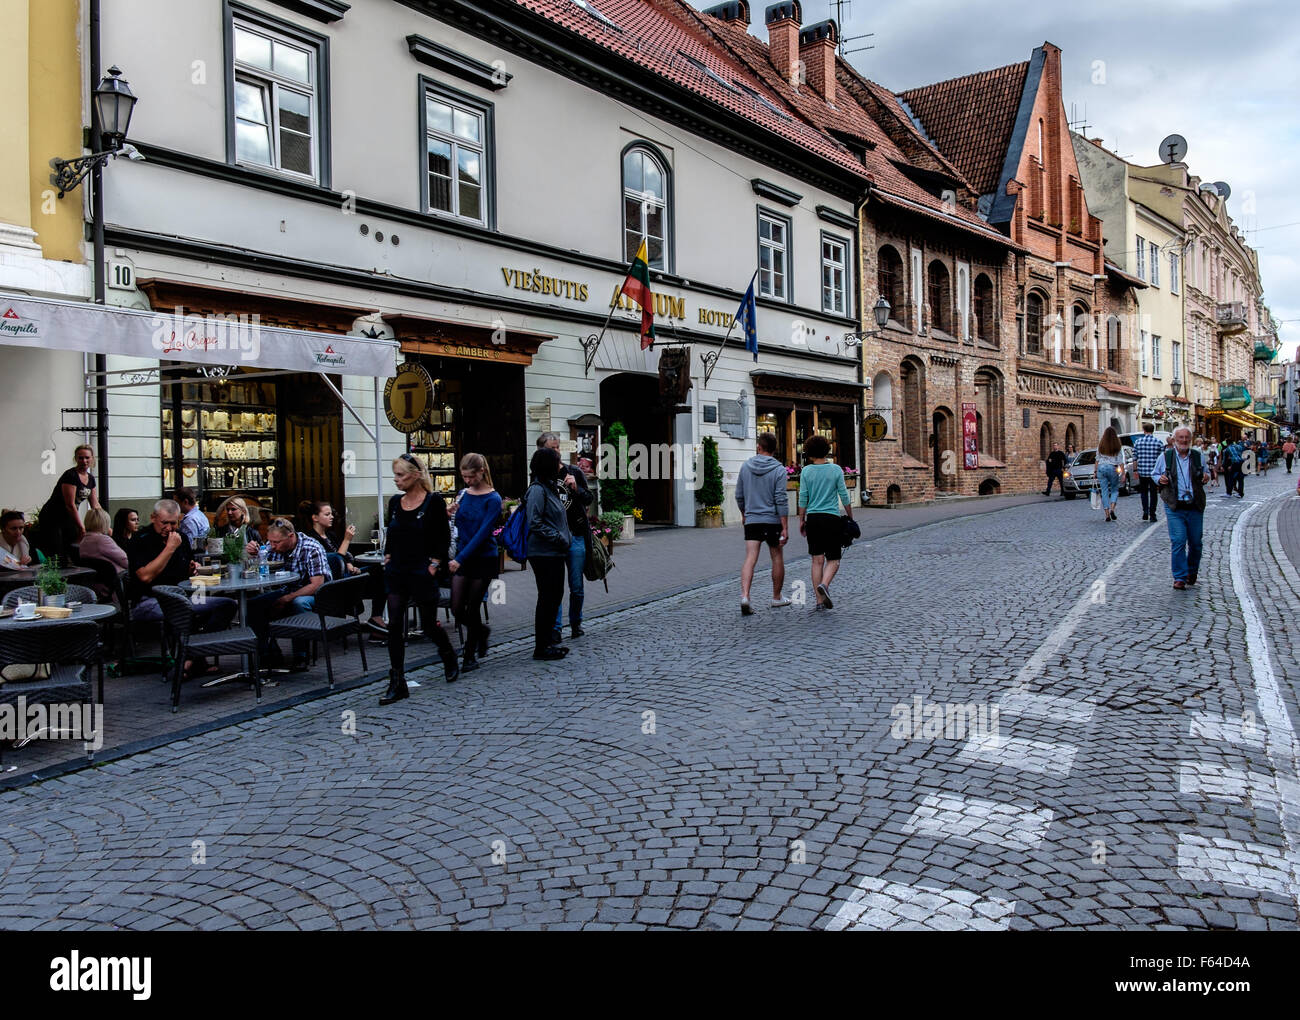 Street with sidewalk cafes in Villnius, Lithuania - Stock Image